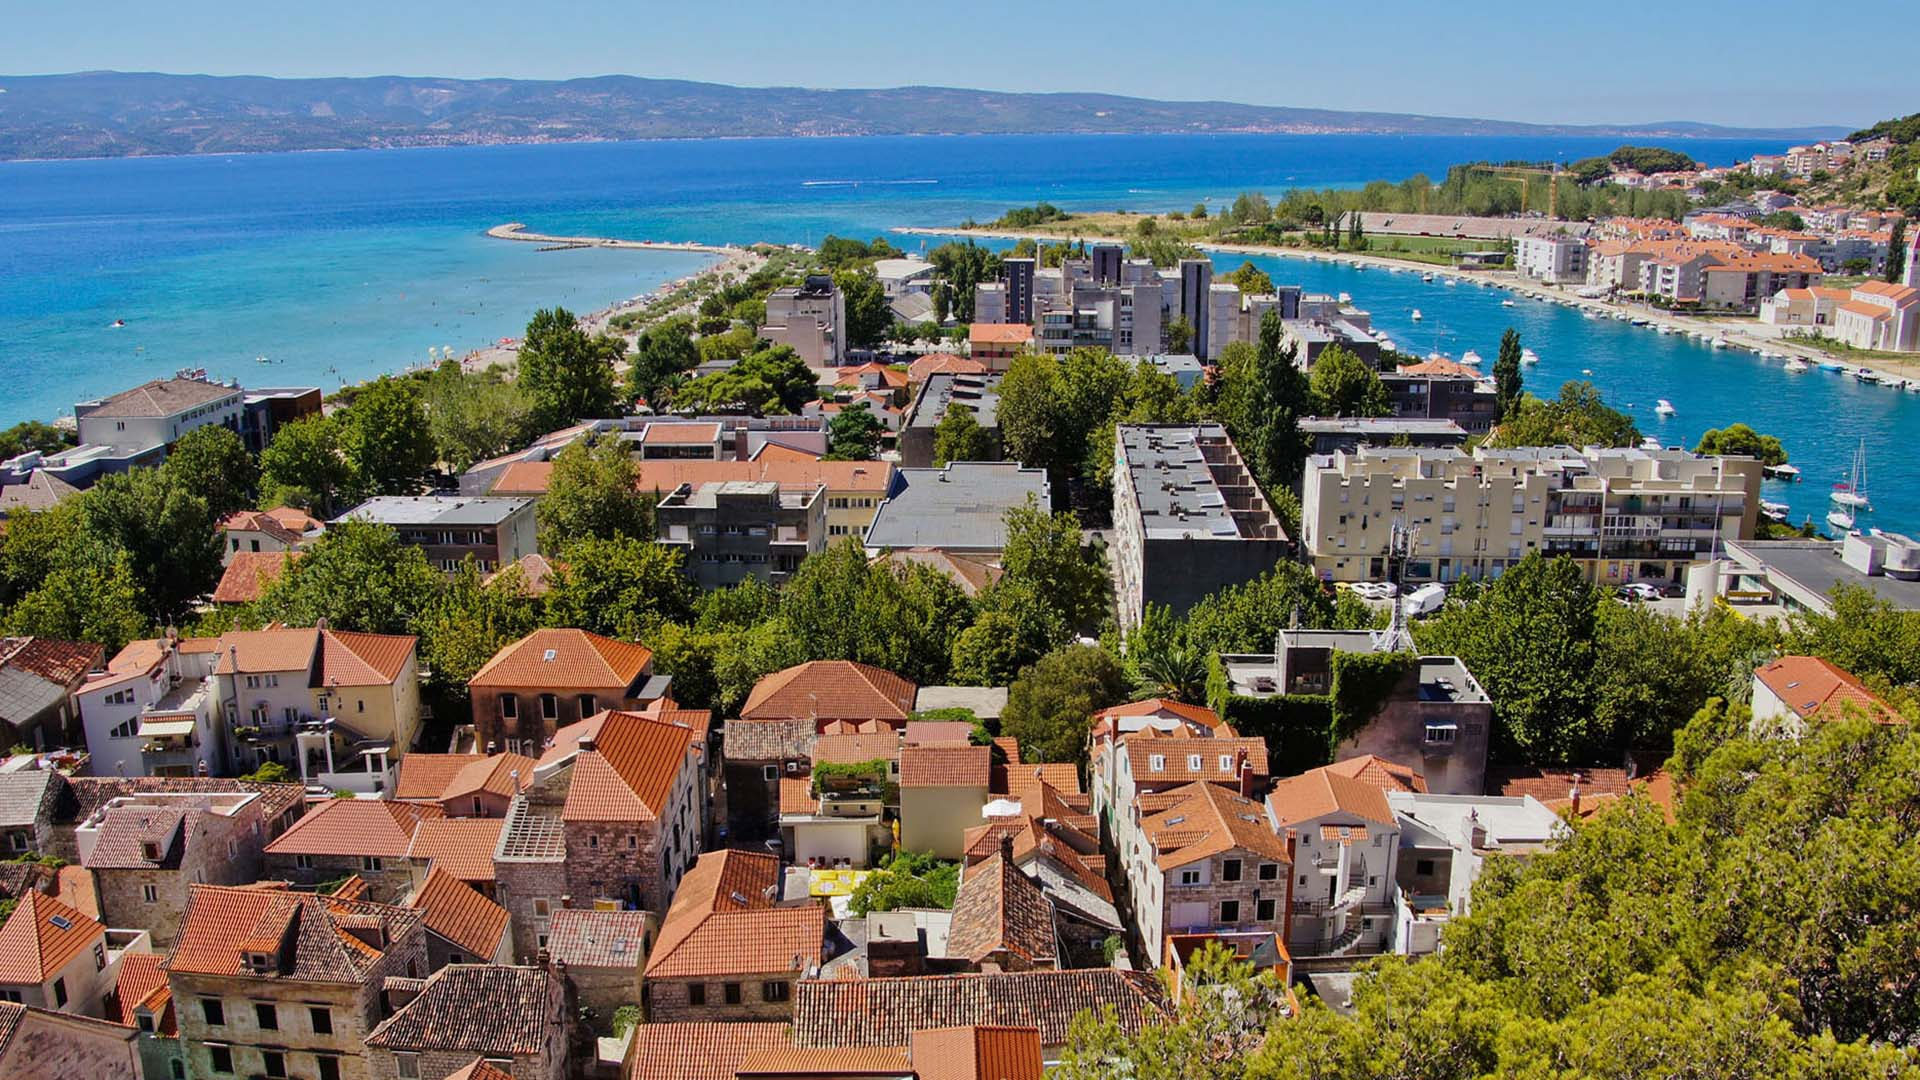 Town of Omis